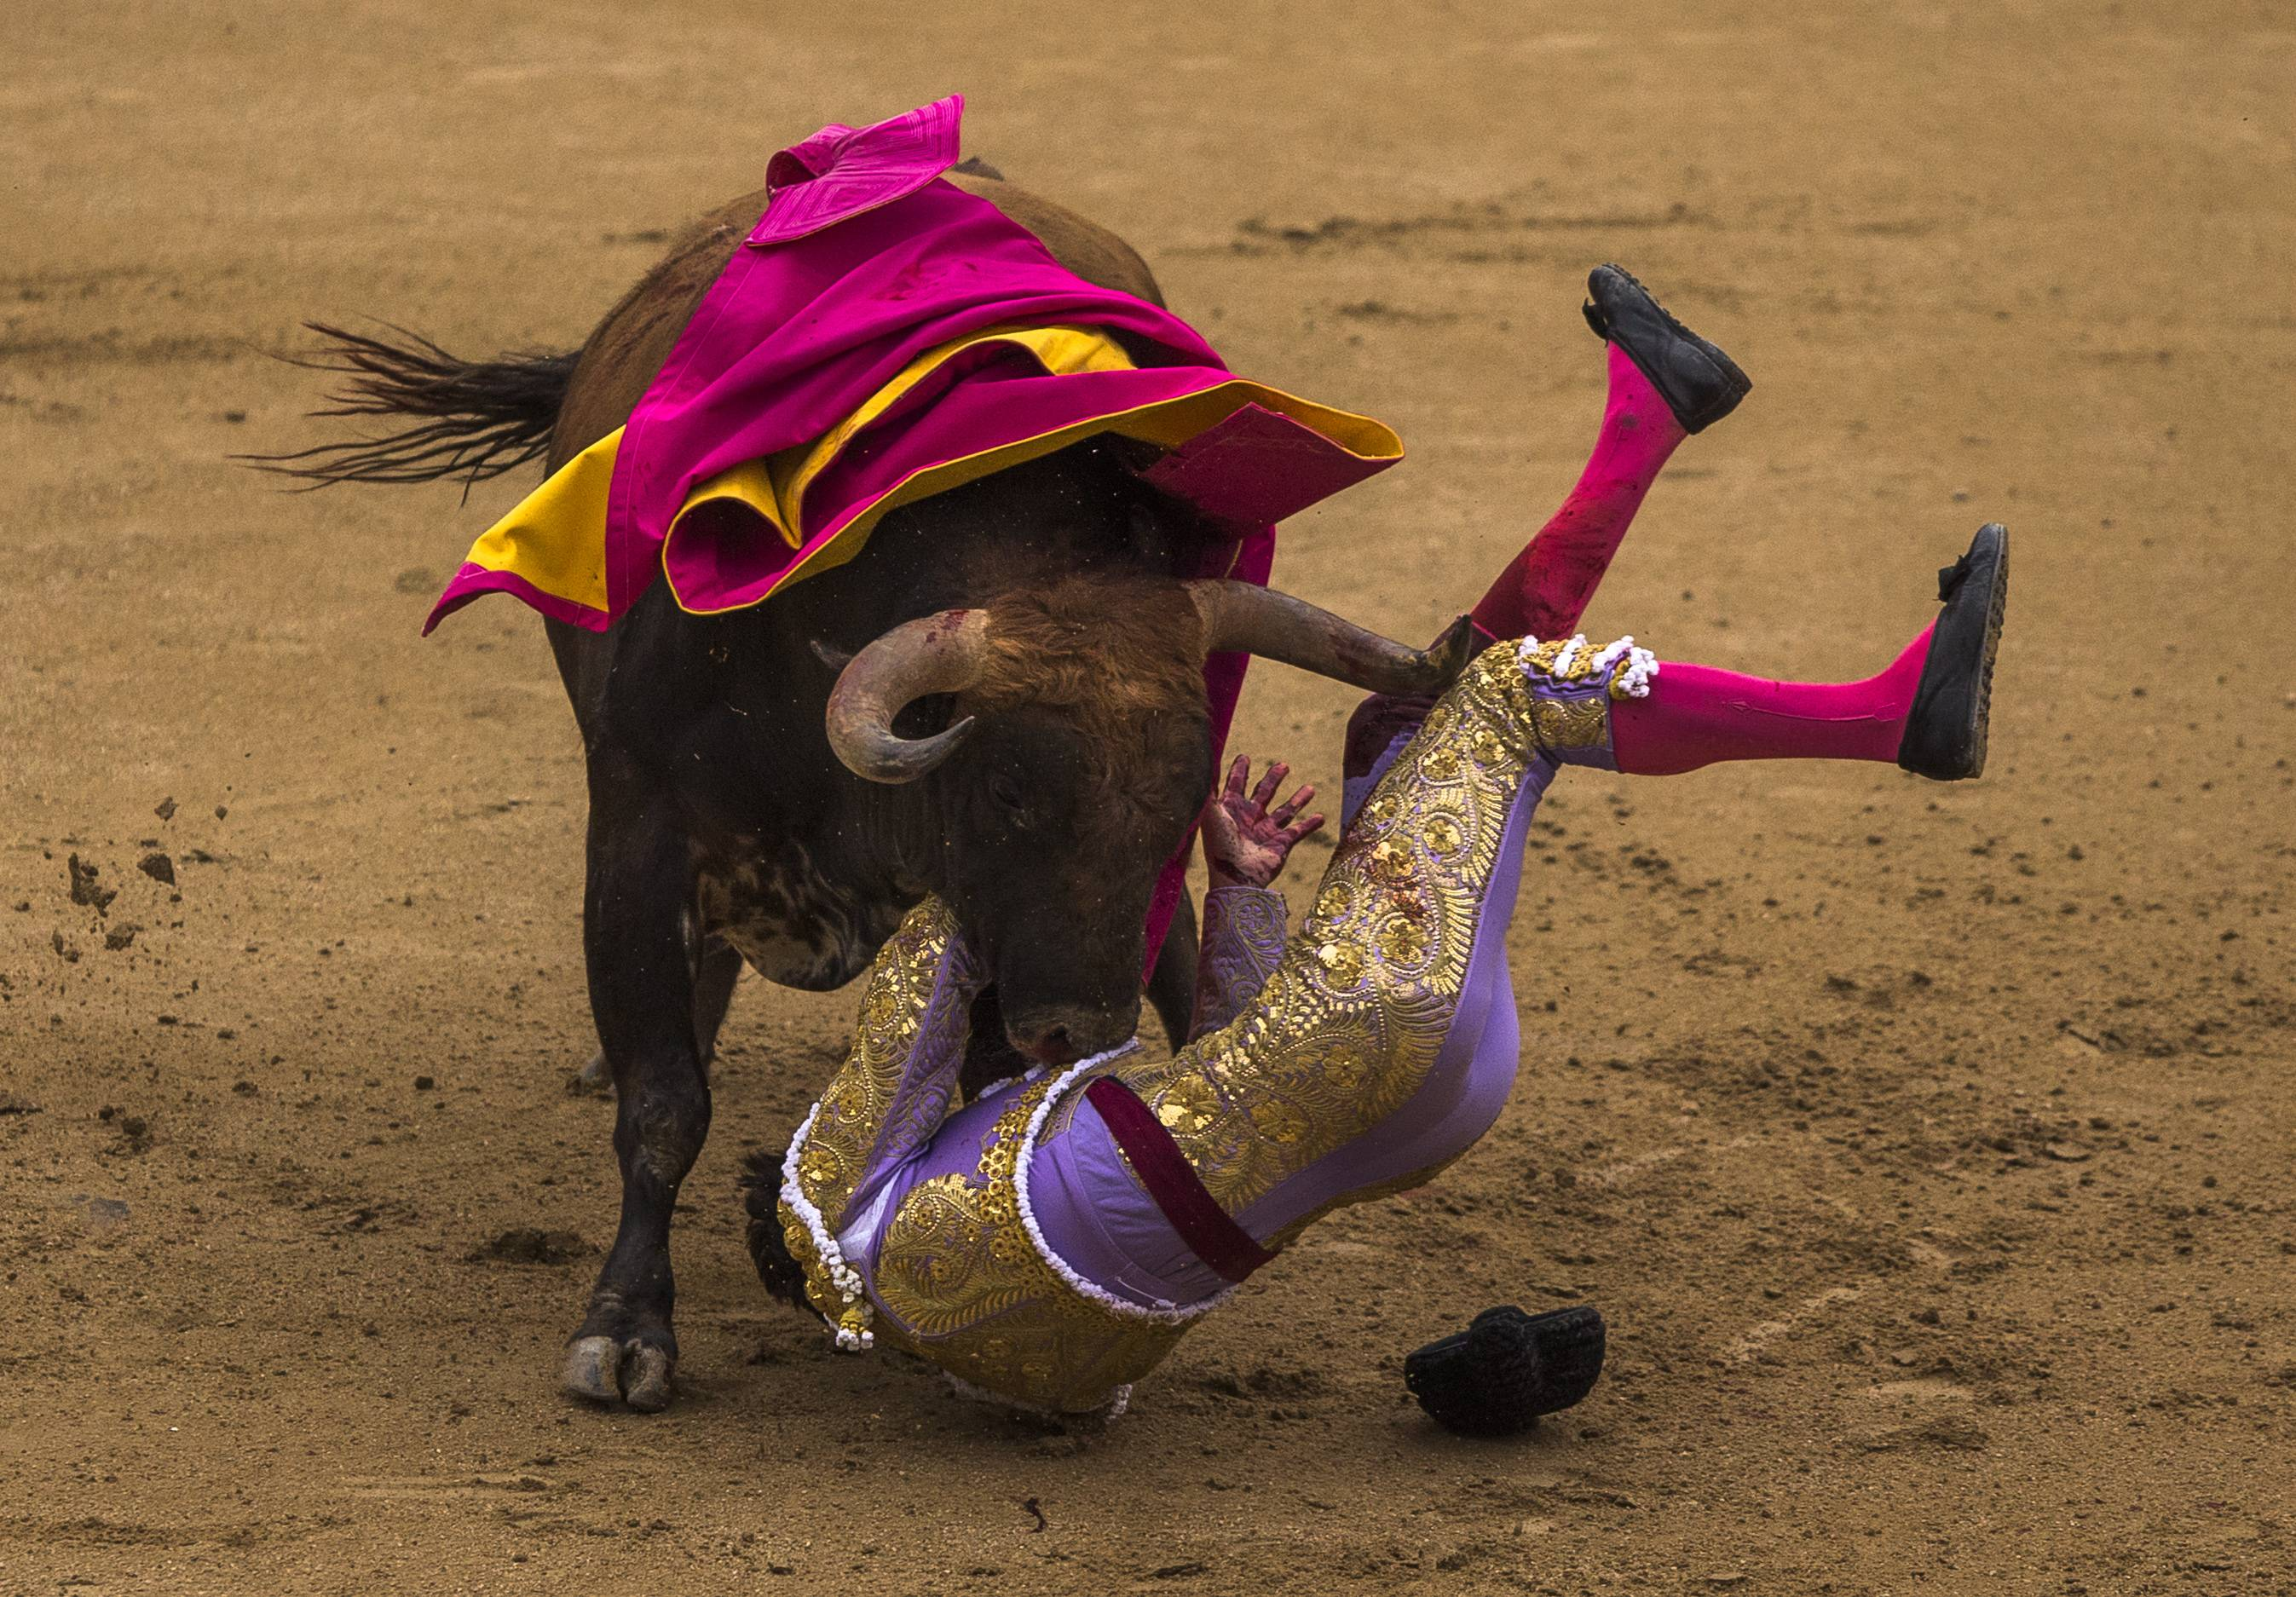 Spanish bullfighter Antonio Nazare is tossed by a Los Chospes ranch fighting bull during a bullfight at Las Ventas bullring in Madrid, Spain, Tuesday, May 20, 2014. Bullfighting is a tradition in Spain and the season runs from March to October.